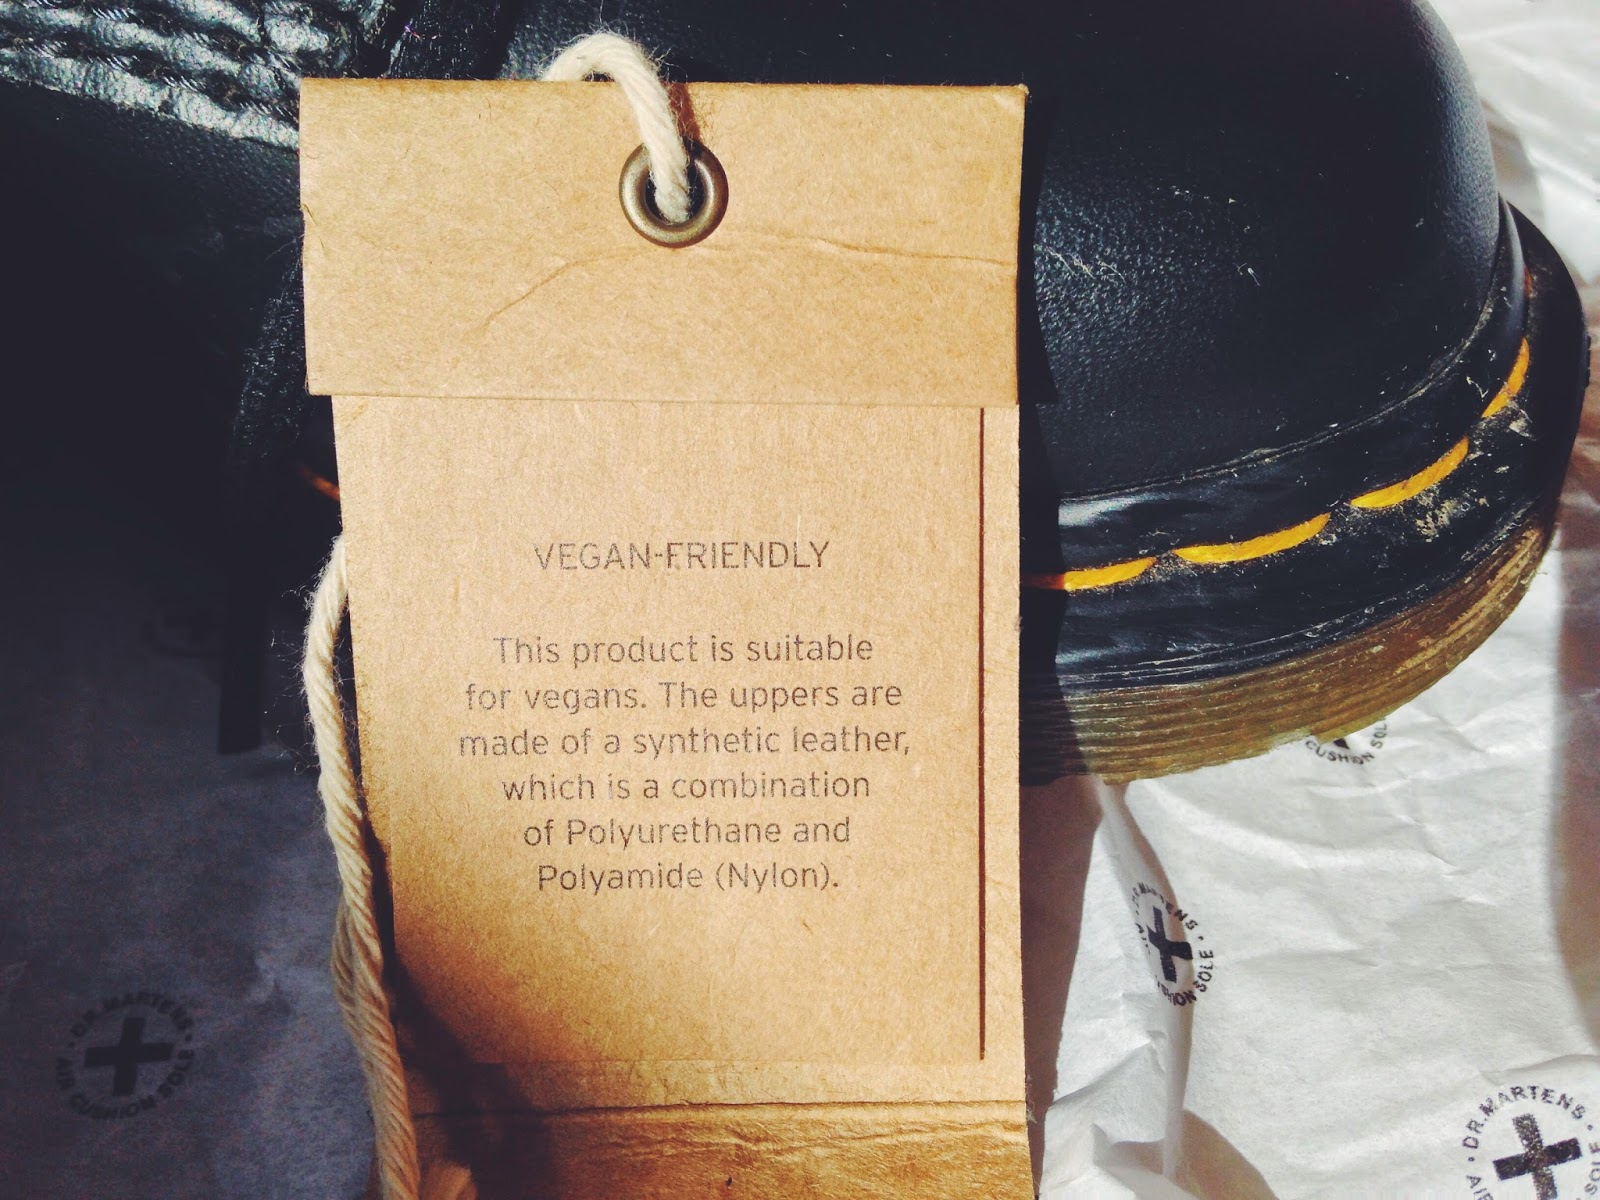 c1f986b4ee It's been just over two months since I bought my Dr Martens Vegan 1460s, so  I thought that it's about time I gave them an honest review.